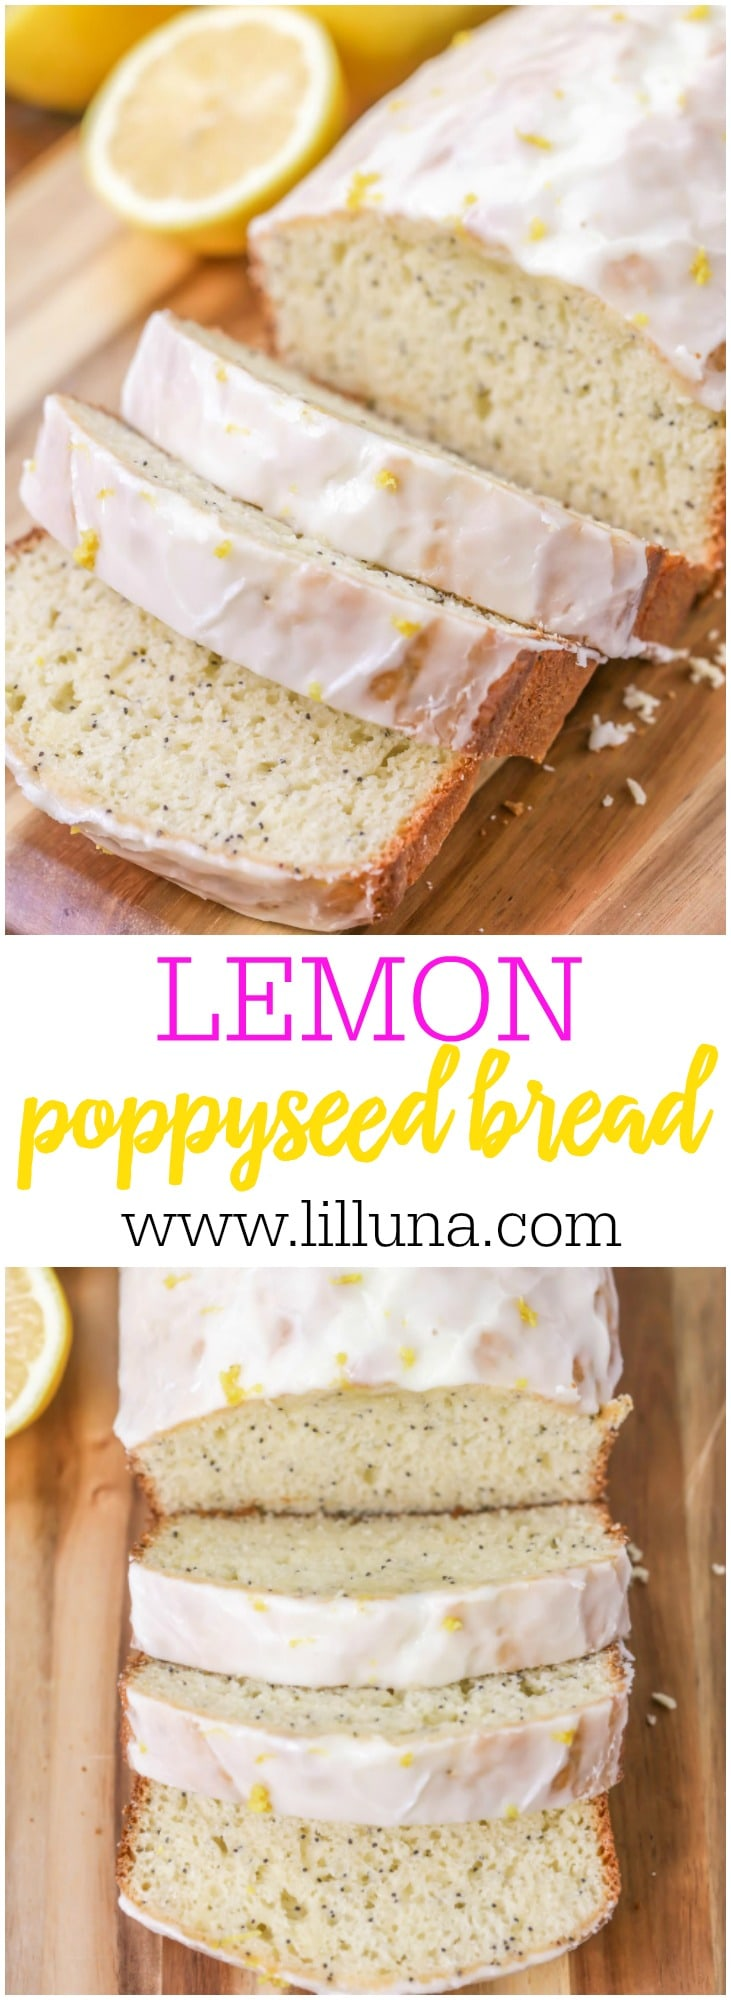 Soft and moist Lemon Poppy Seed bread. This quick bread recipe is simple and so full of flavor it's sure to be gone in minutes!